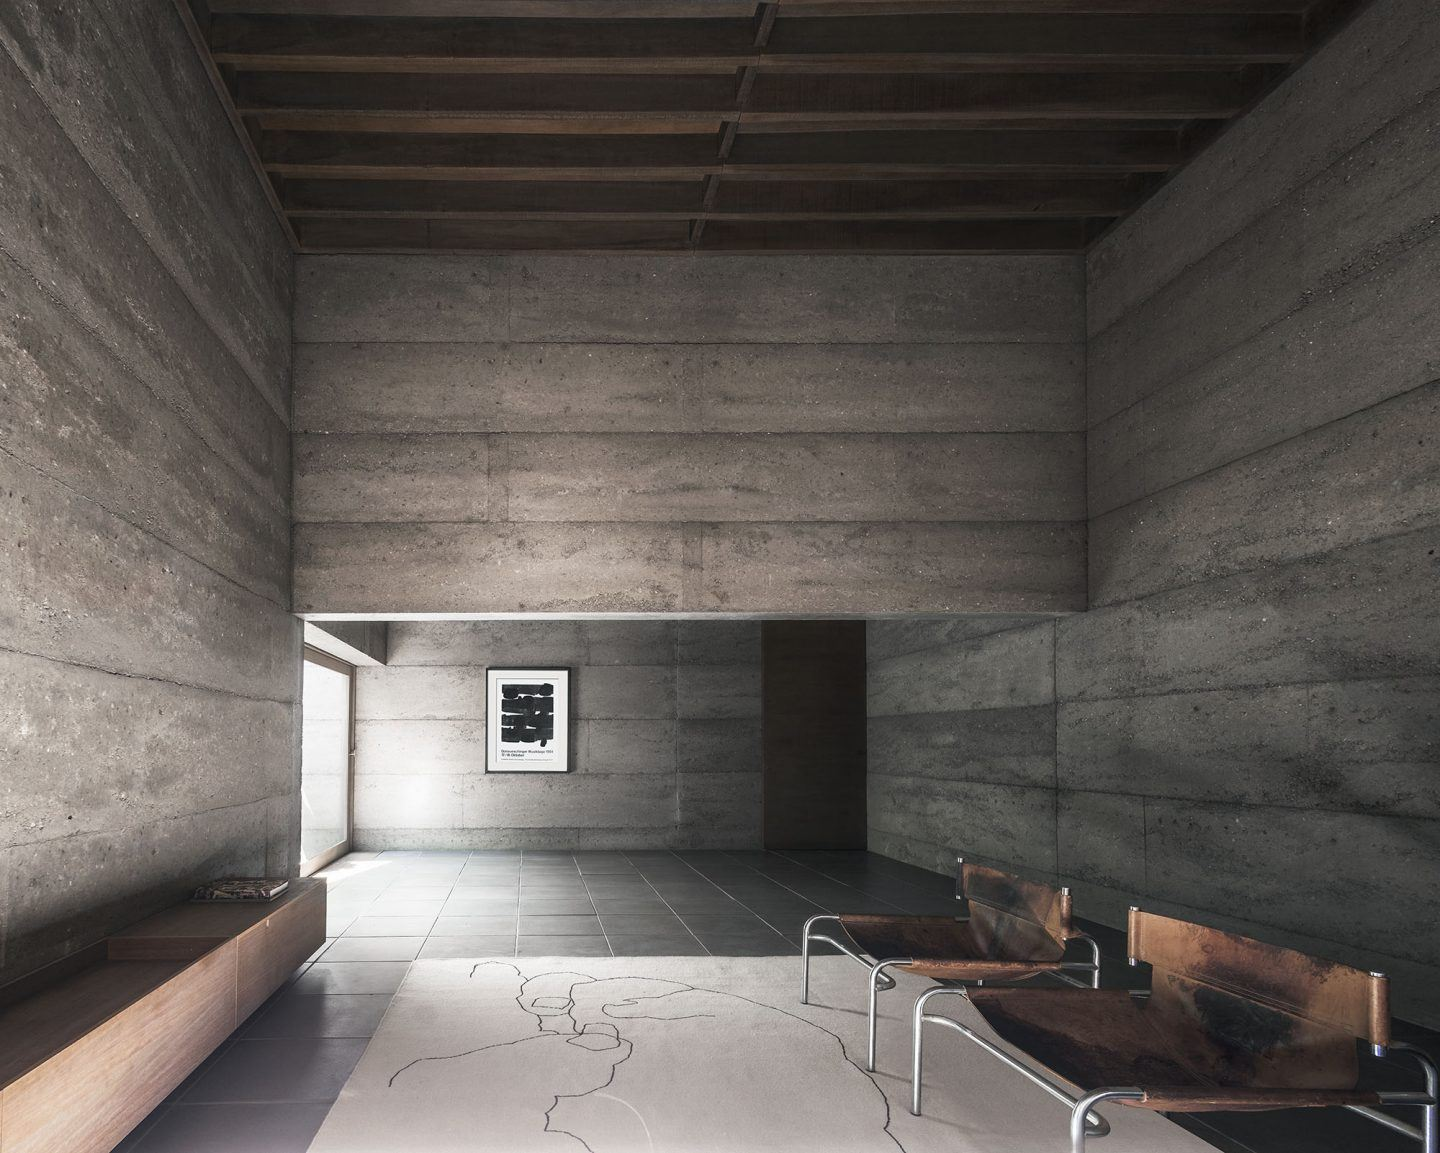 IGNANT-Architecture-Morq-Cloister-House-8